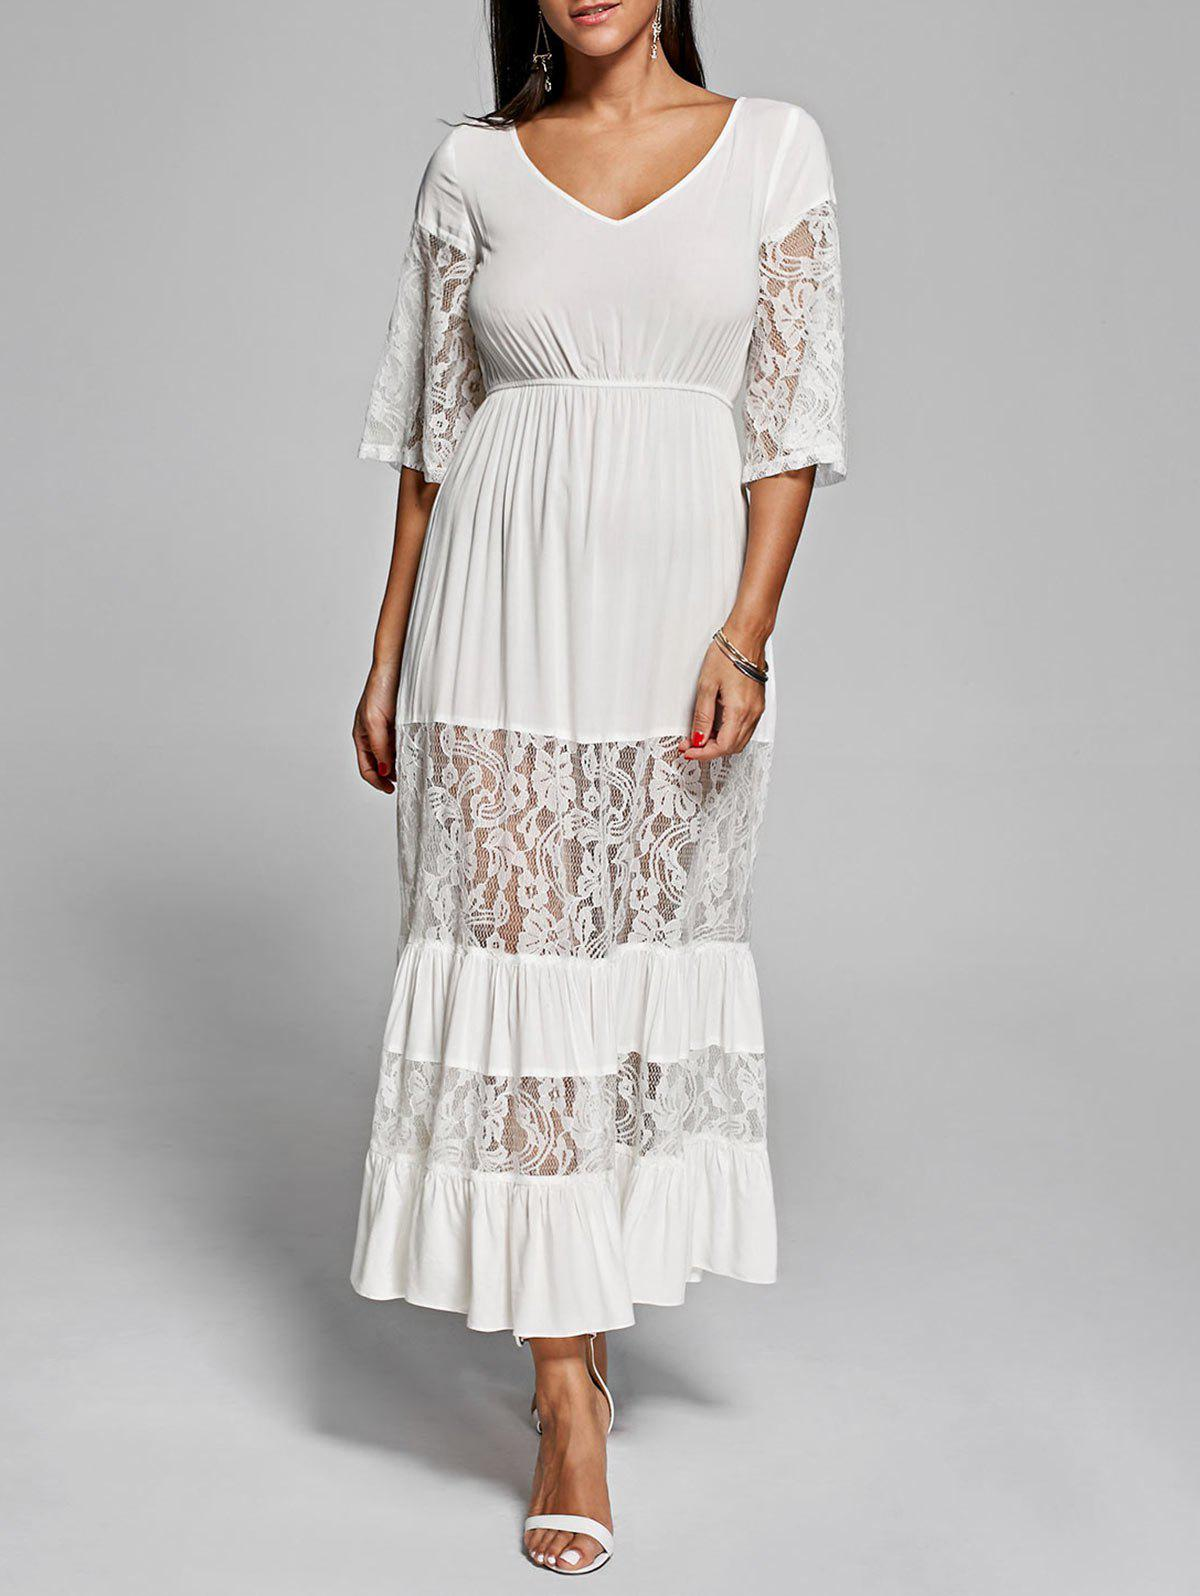 Lace Insert V Neck Romantique Boho Maxi Dress - Blanc Cassé 2XL